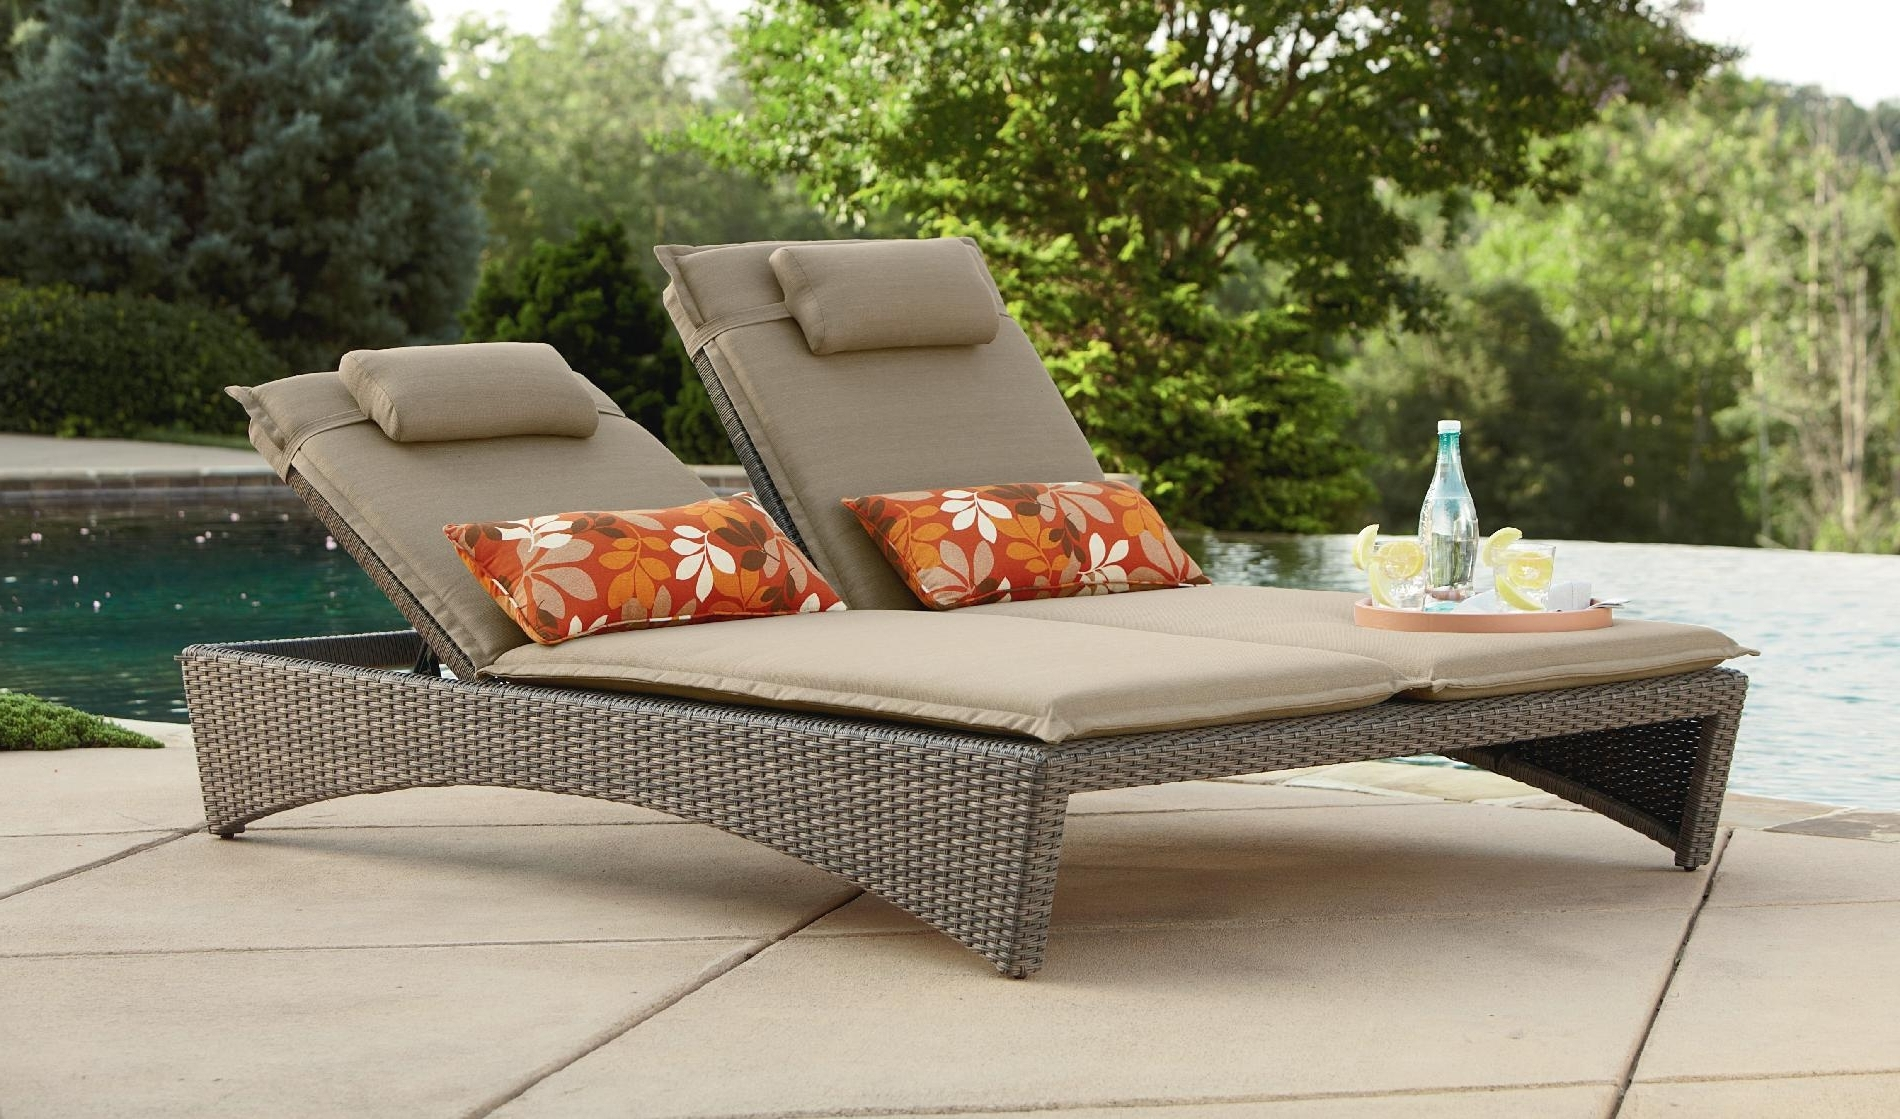 2017 Sears Chaise Lounge Chairs Patio Furniture • Lounge Chairs Ideas For Sears Chaise Lounges (View 1 of 15)